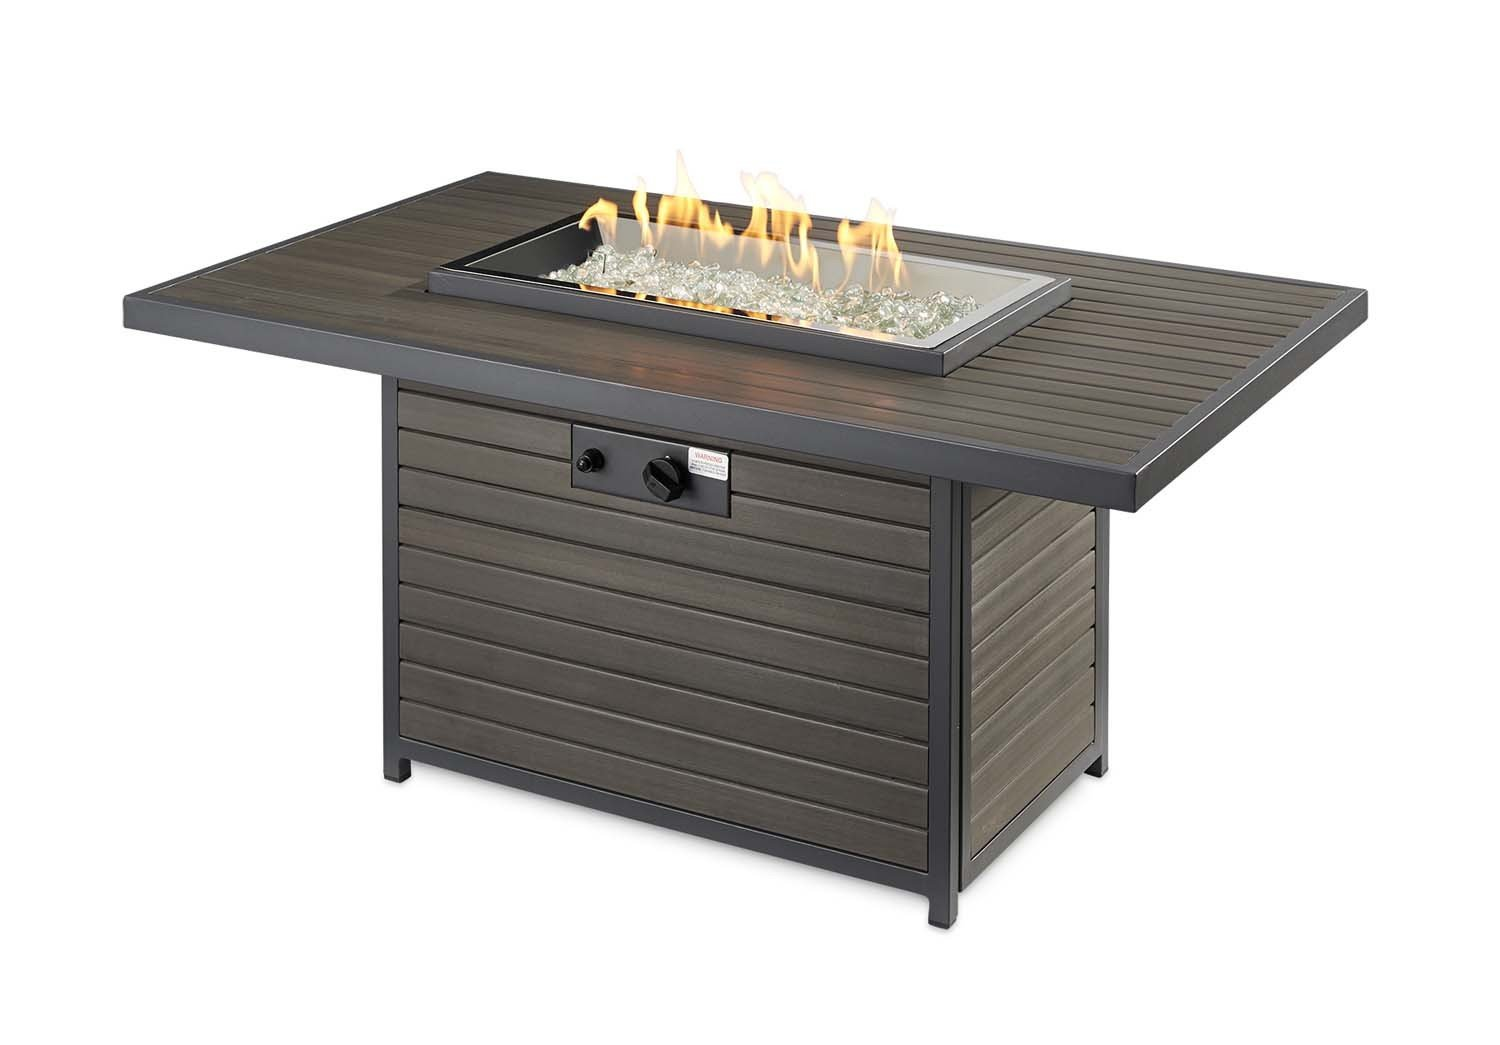 Outdoor GreatRoom Brooks Fire Table by The Outdoor GreatRoom Company